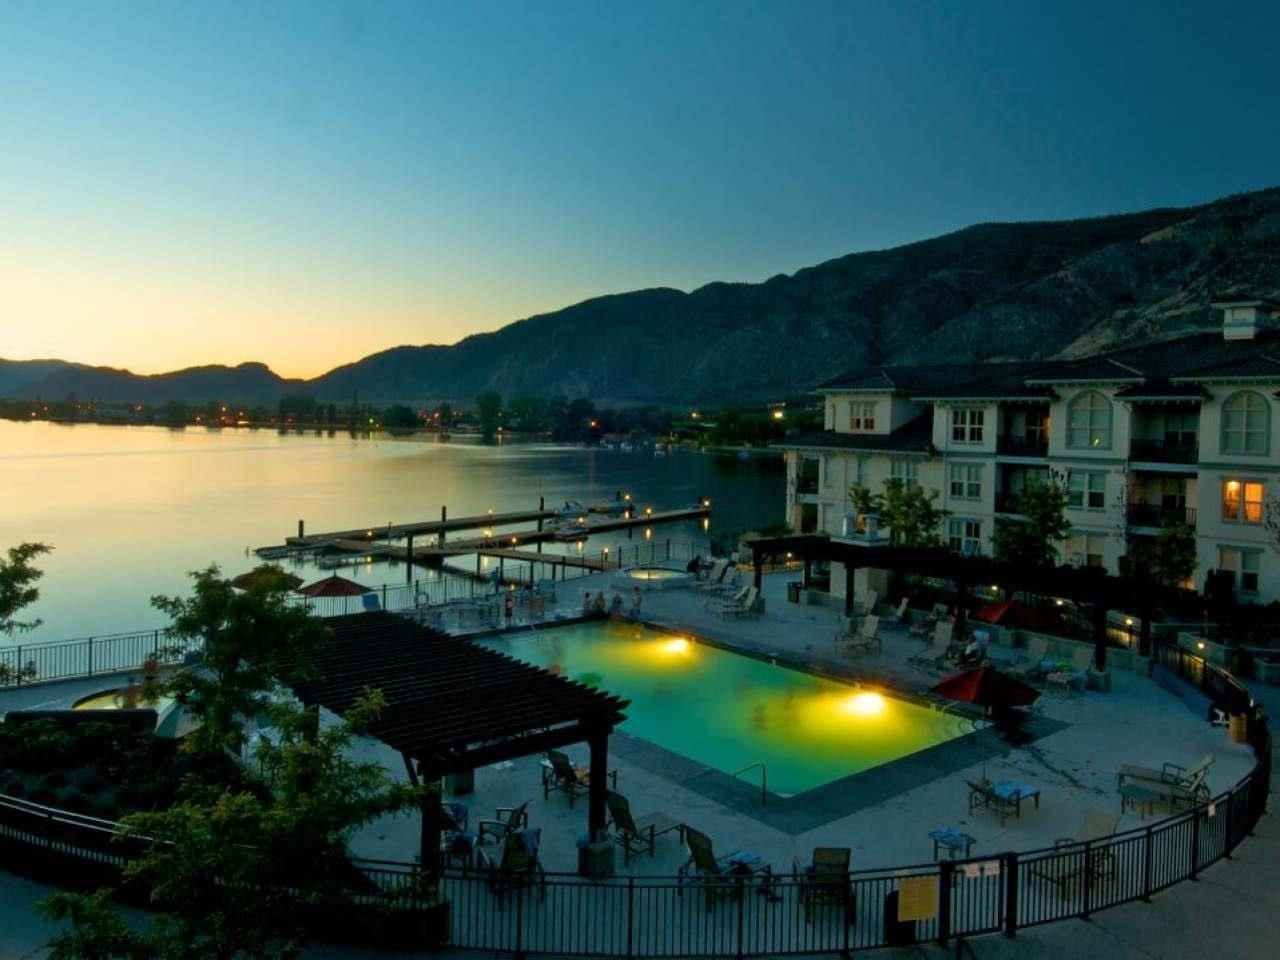 Main Photo: #234 4200 LAKESHORE Drive, in Osoyoos: House for sale : MLS®# 190198